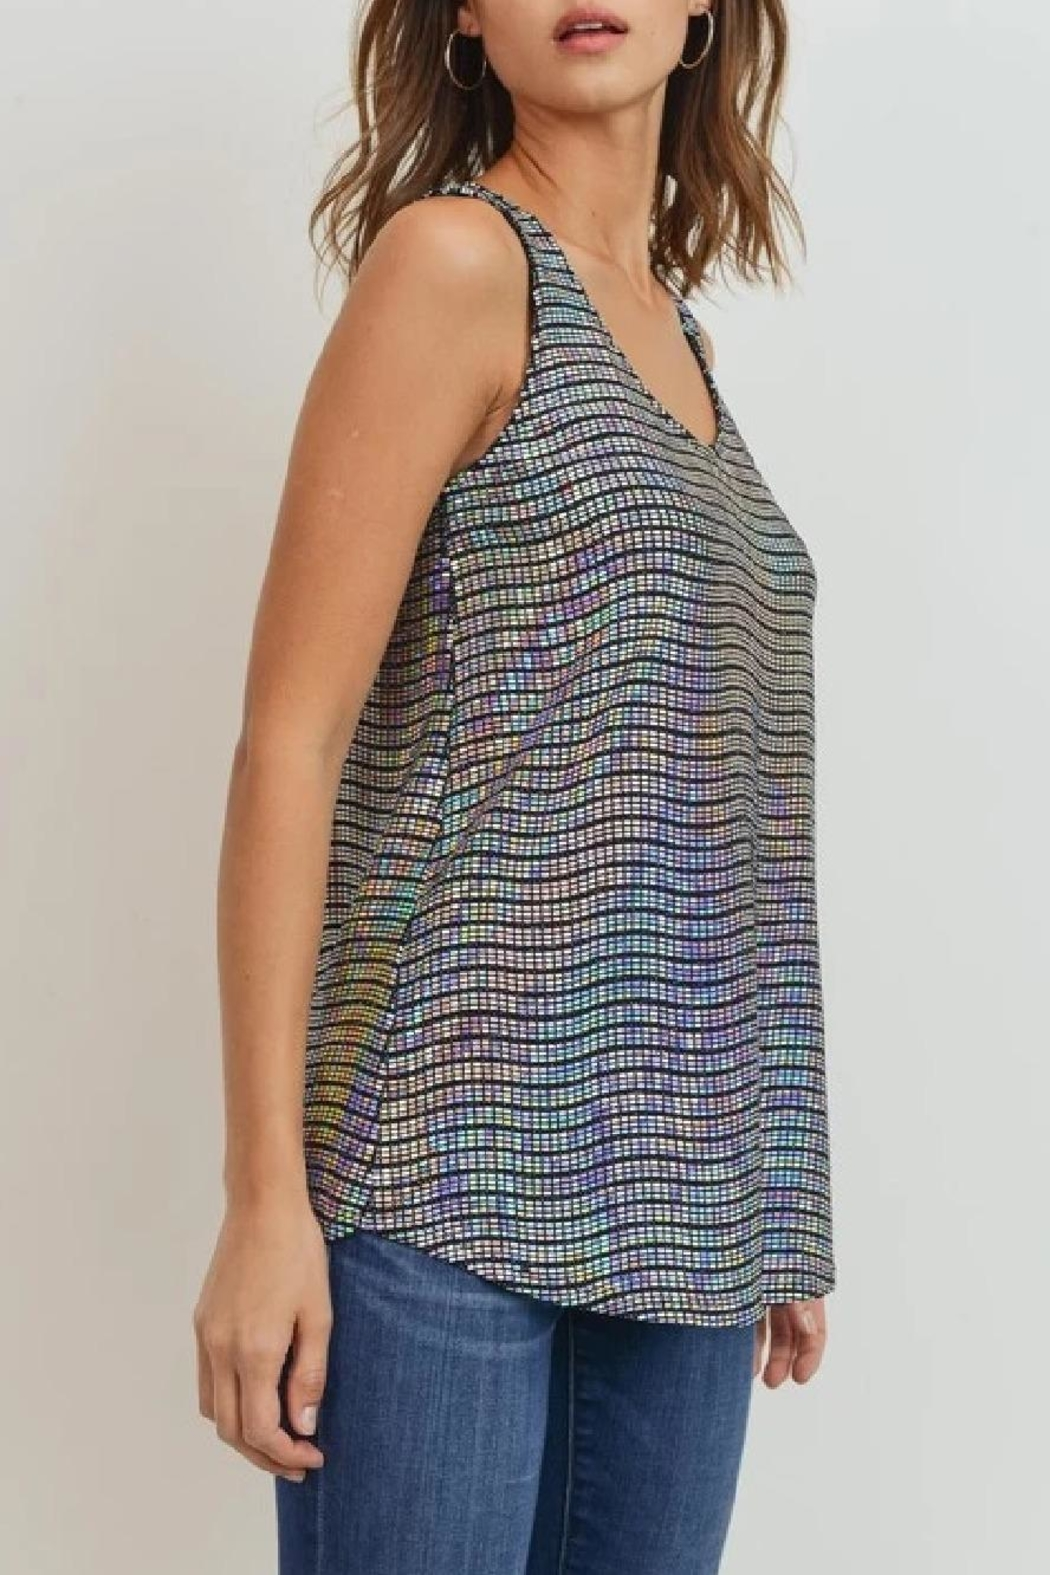 Cherish Wave-Sequins Sleeveless Top - Front Full Image